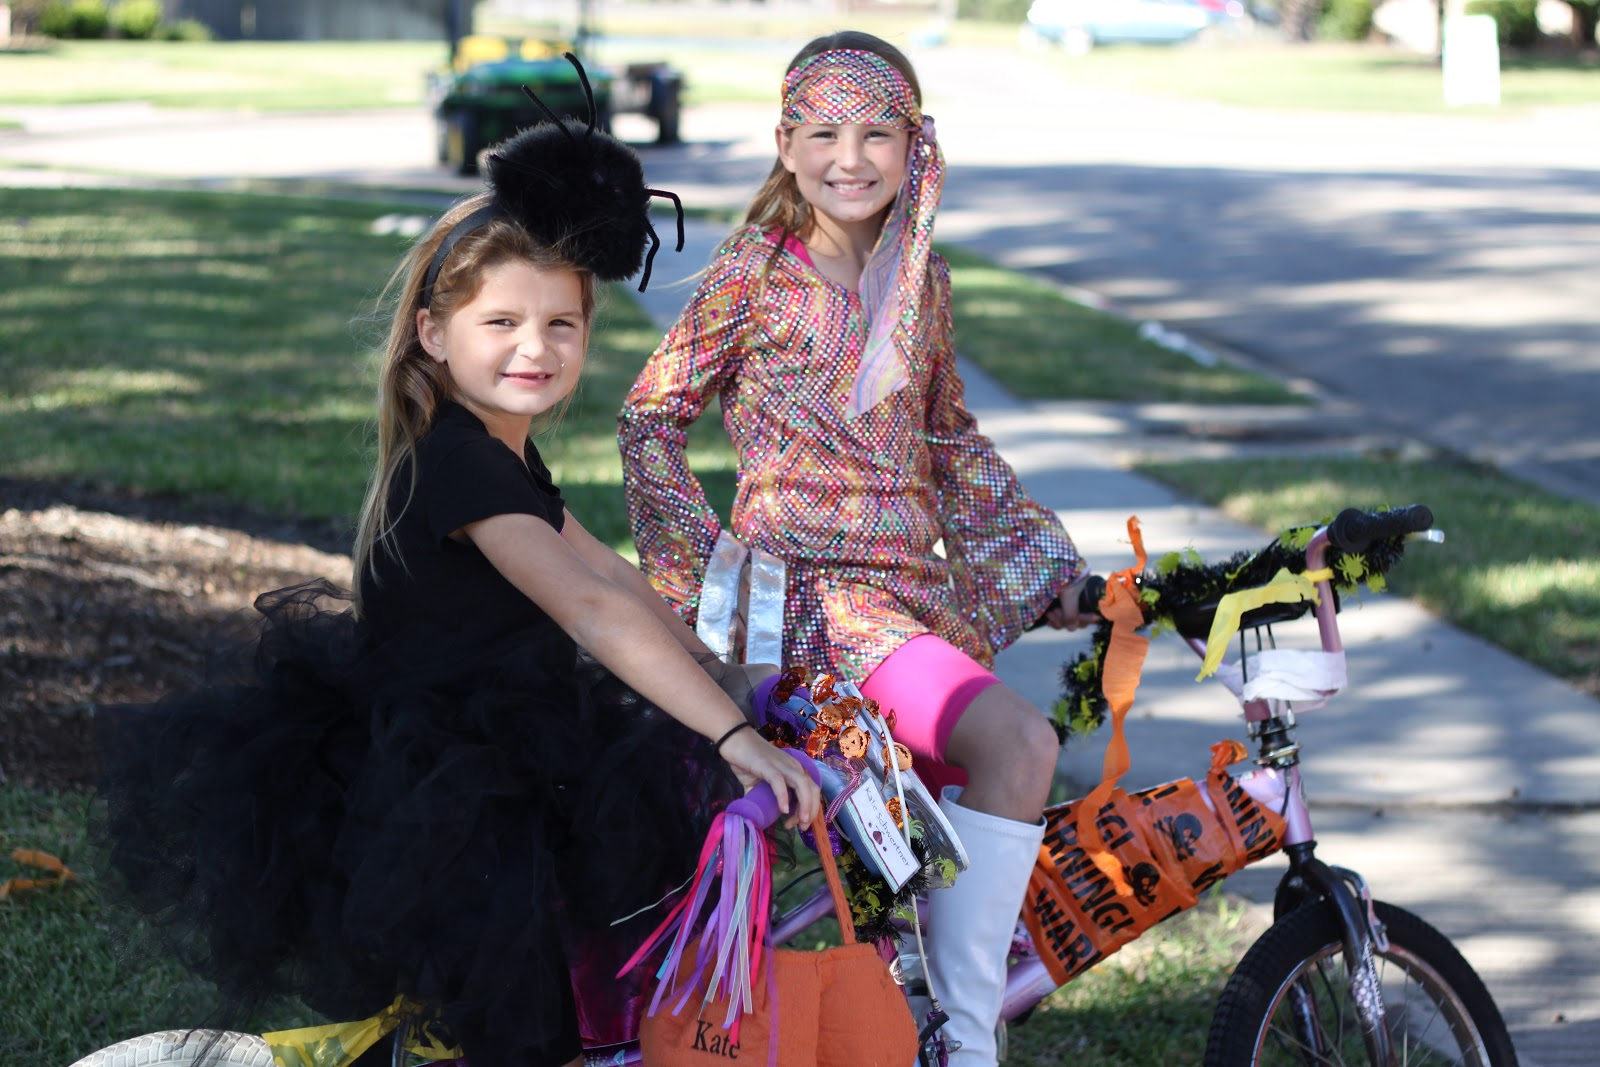 Dress up and ride your bike or walk to show your support for LASOAR!